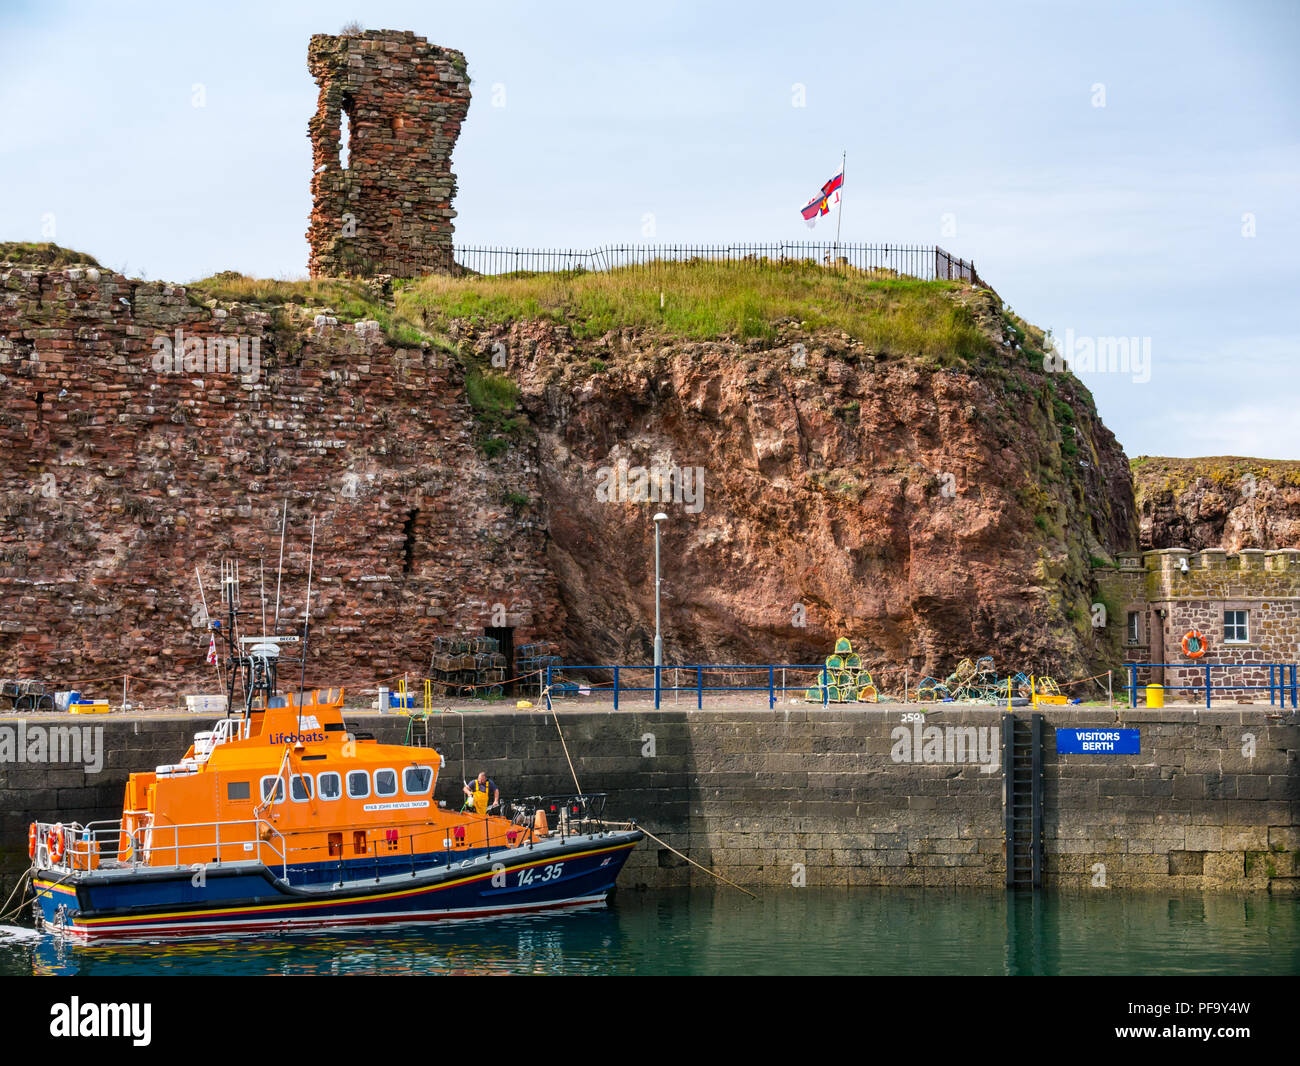 RNLI Lifeboat moored in harbour, with ruined Dunbar Castle, Dunbar, East Lothian, Scotland, UK - Stock Image